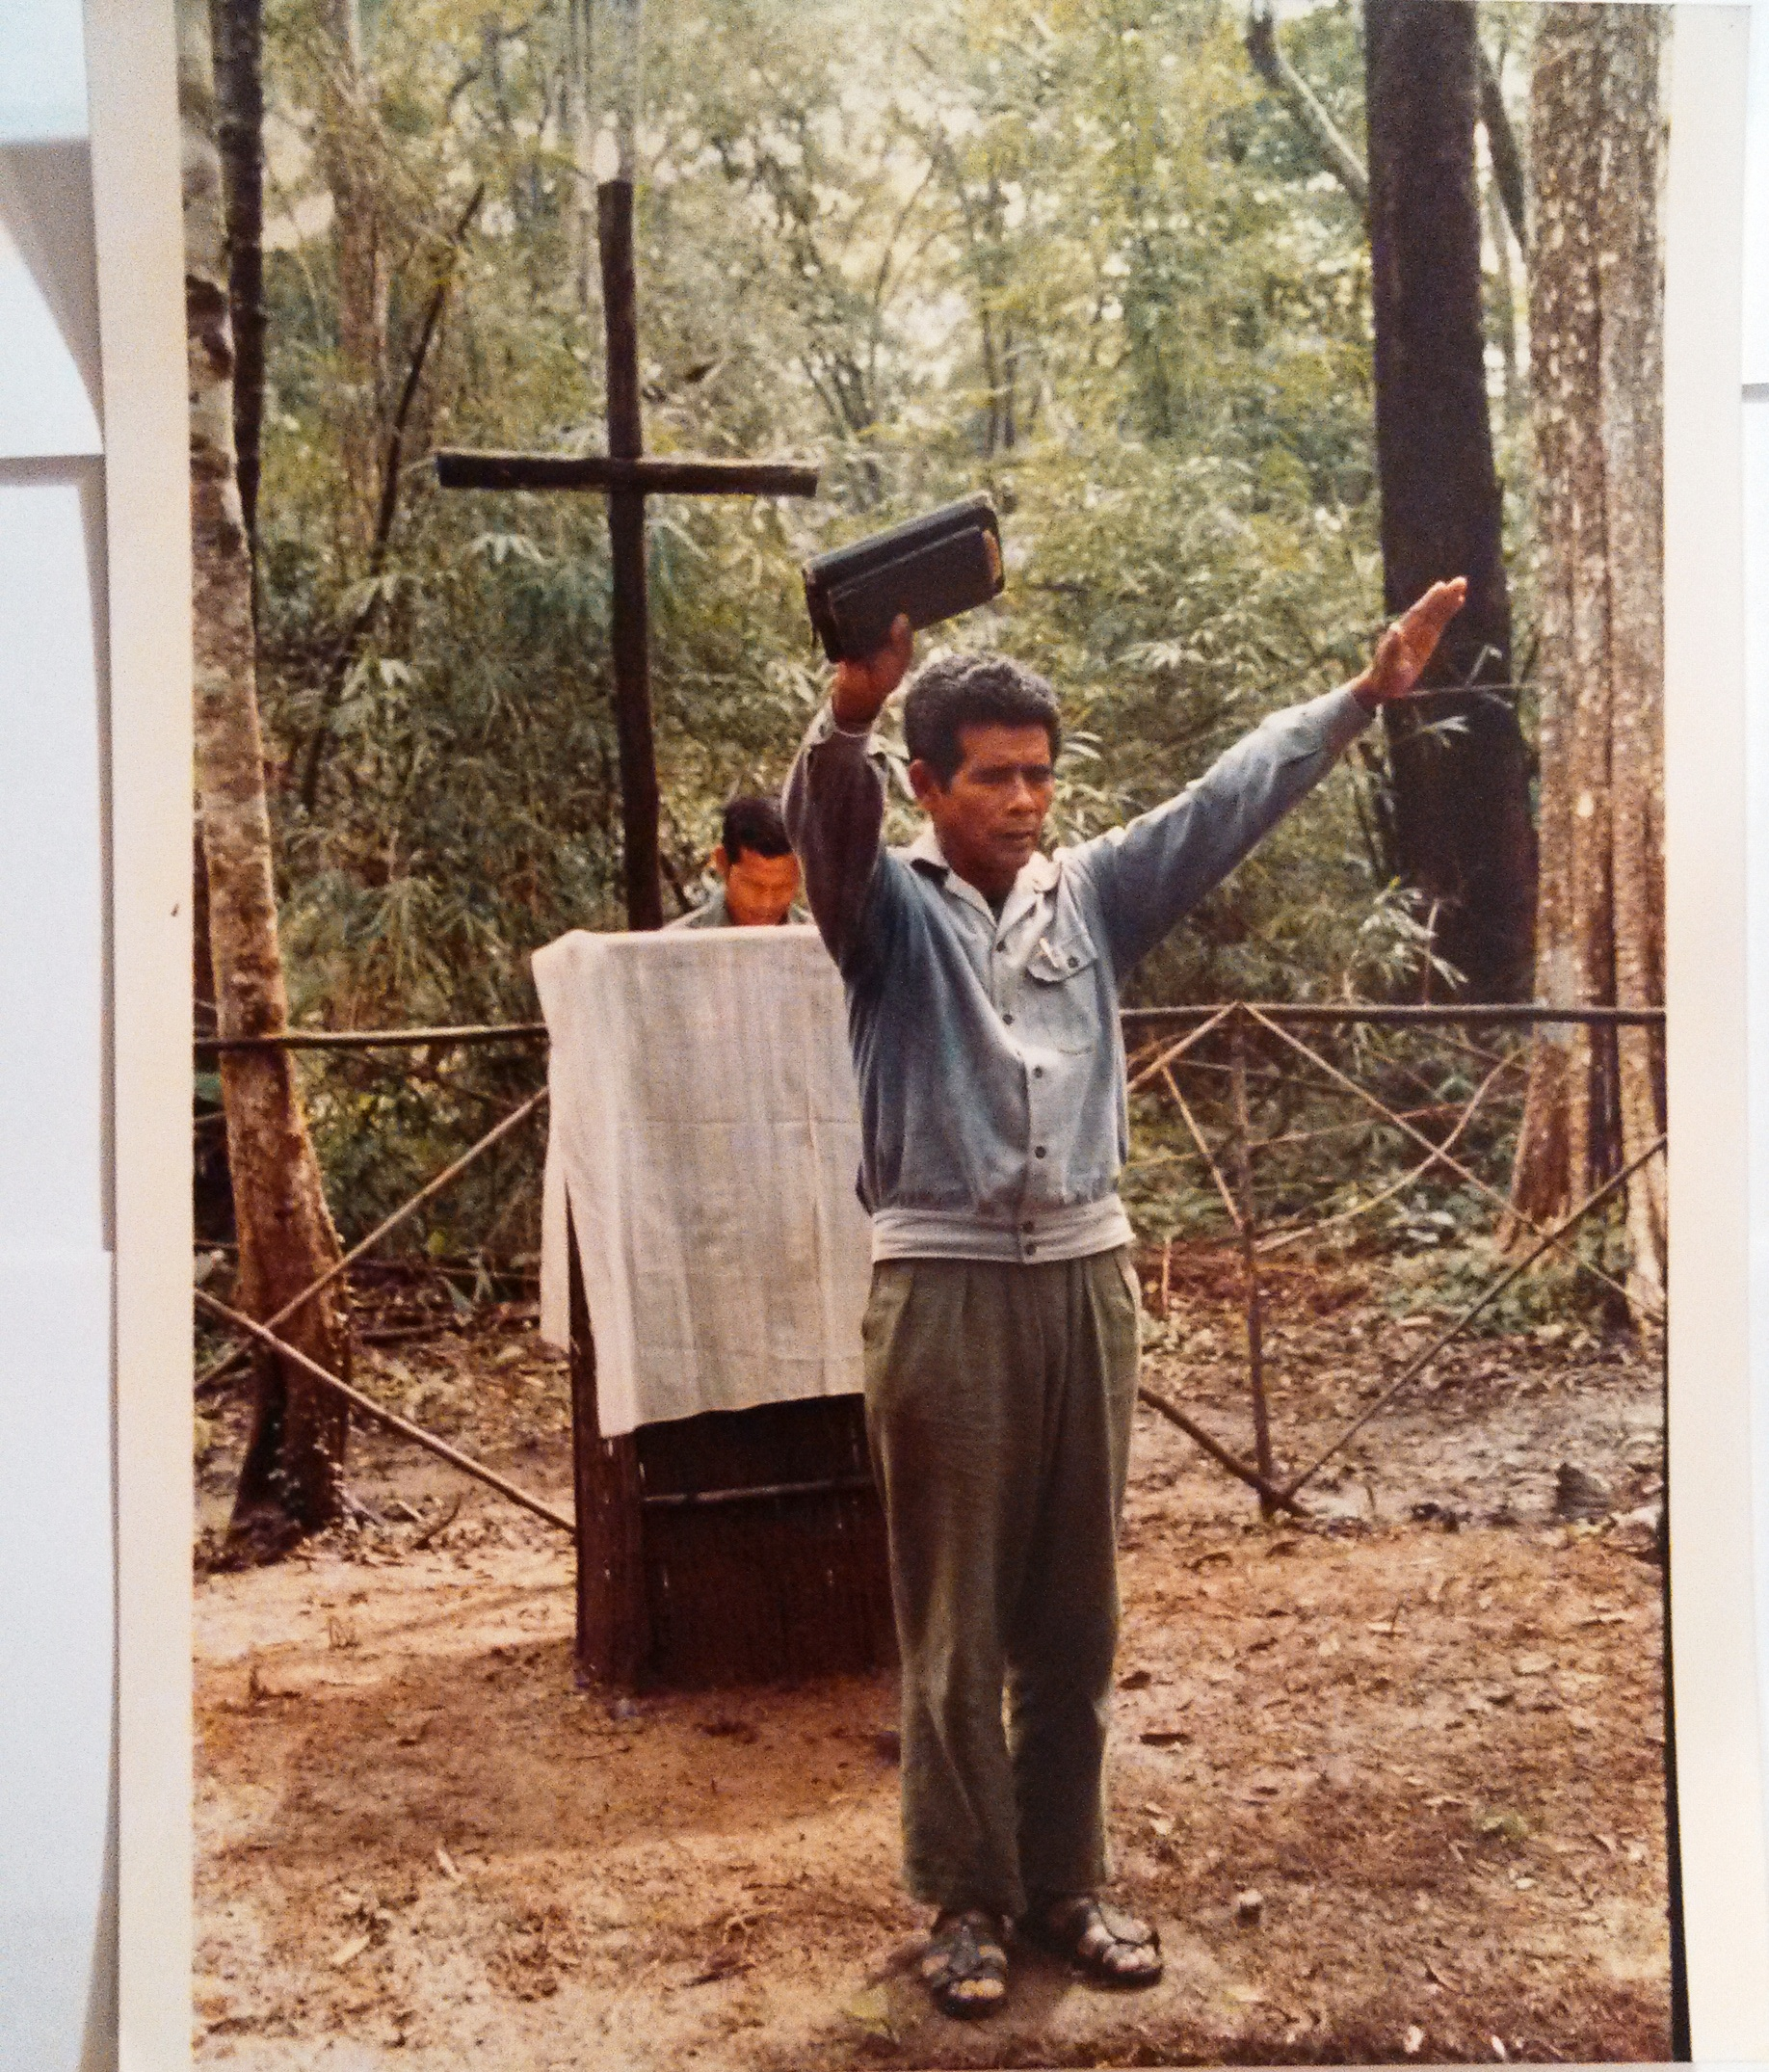 FULRO Catholic priest conducting services, 1992. (Credit to Nate Thayer)